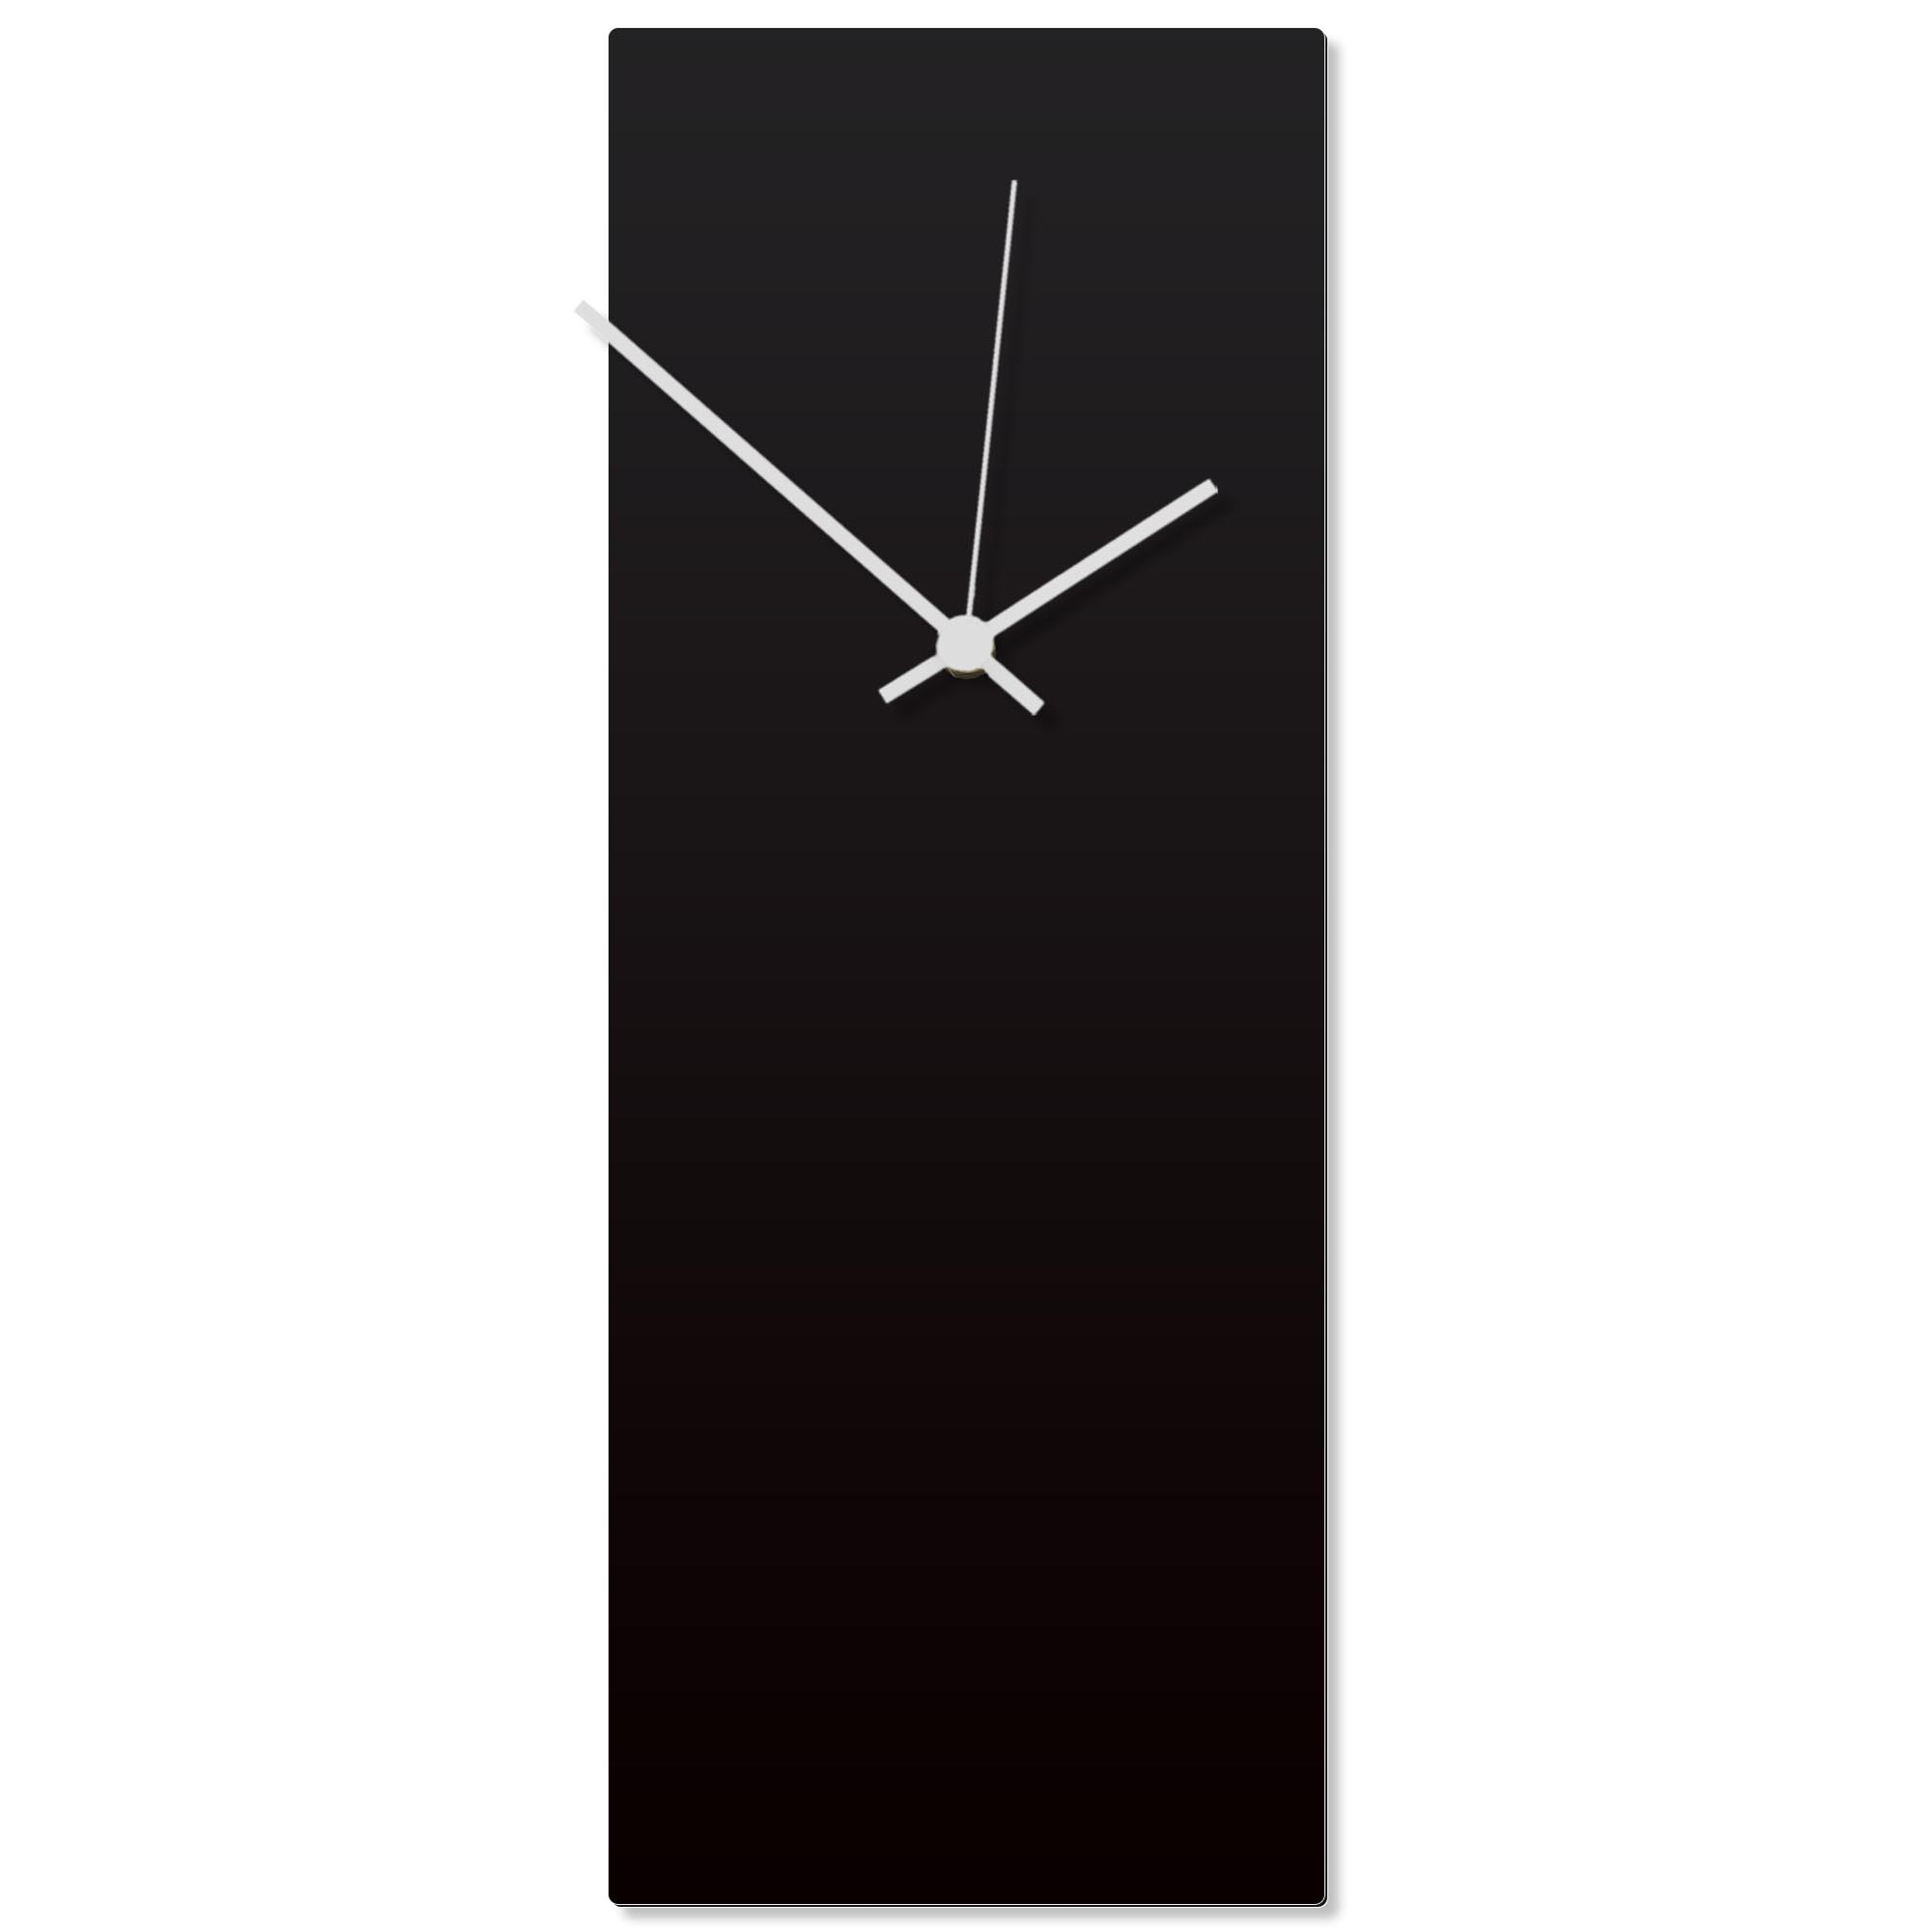 Blackout White Clock Large 8.25x22in. Aluminum Polymetal